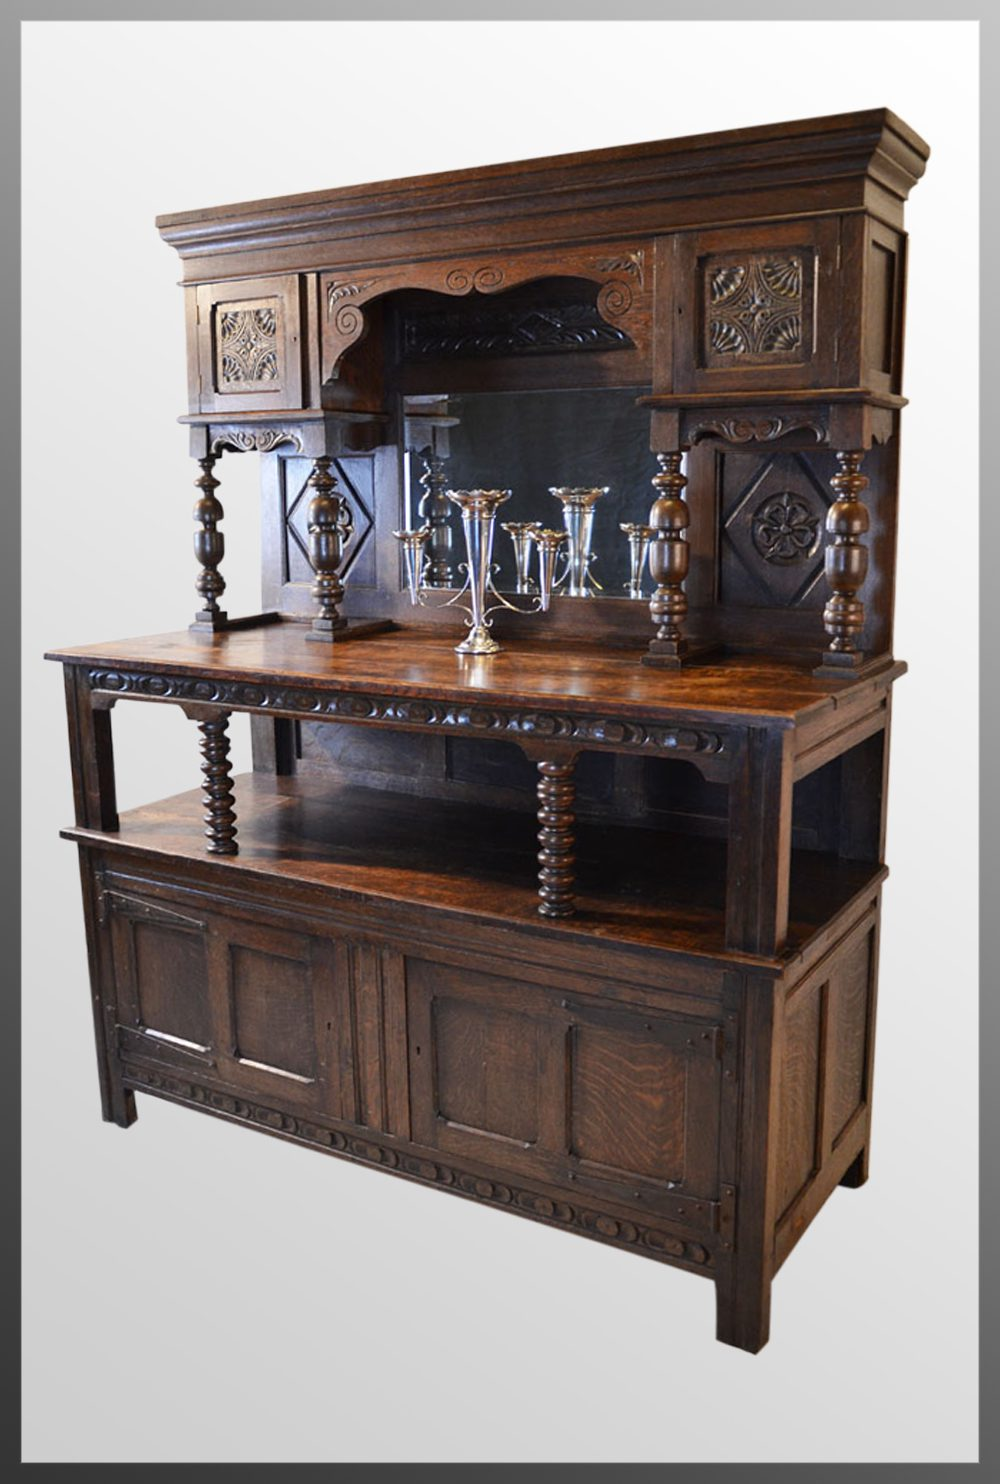 Large Welsh Country Dresser Kitchen Buffet Cabinet